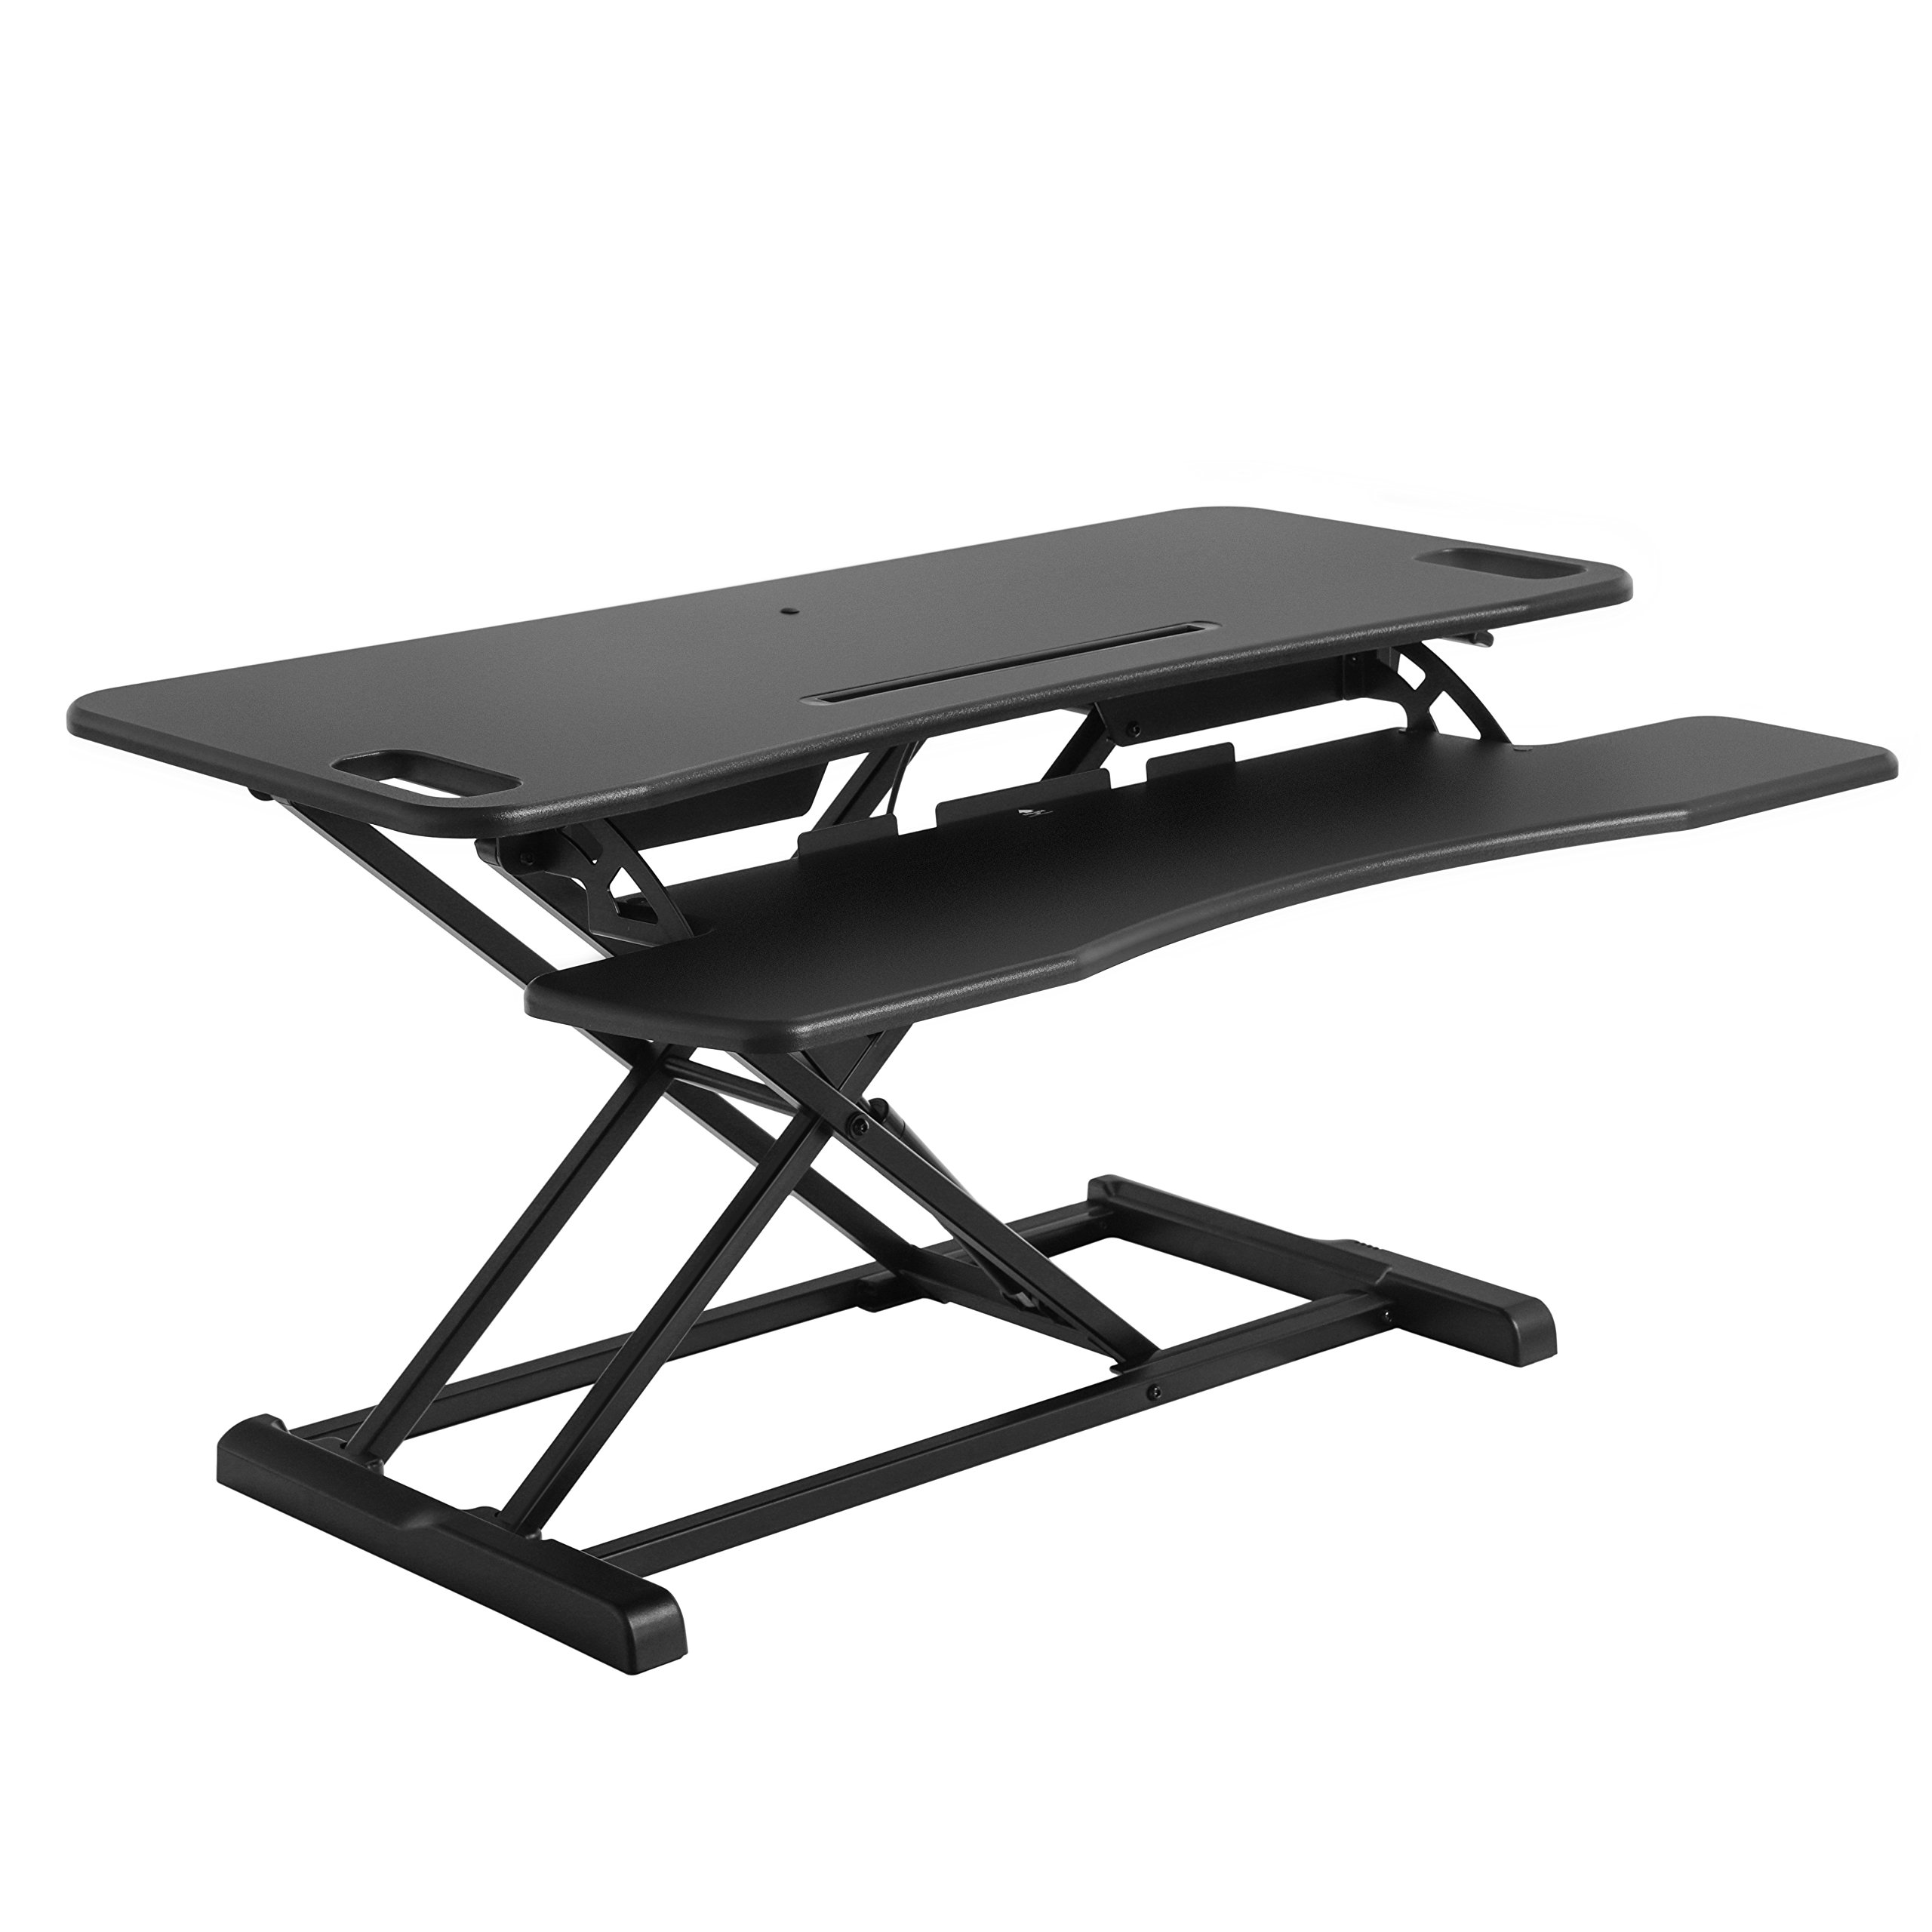 SONGMICS Standing Desk, Height Adjustable Sit Stand Desk, for Computer, Laptop and Office Supply, with Removable Keyboard Tray, Black ULSD06BK